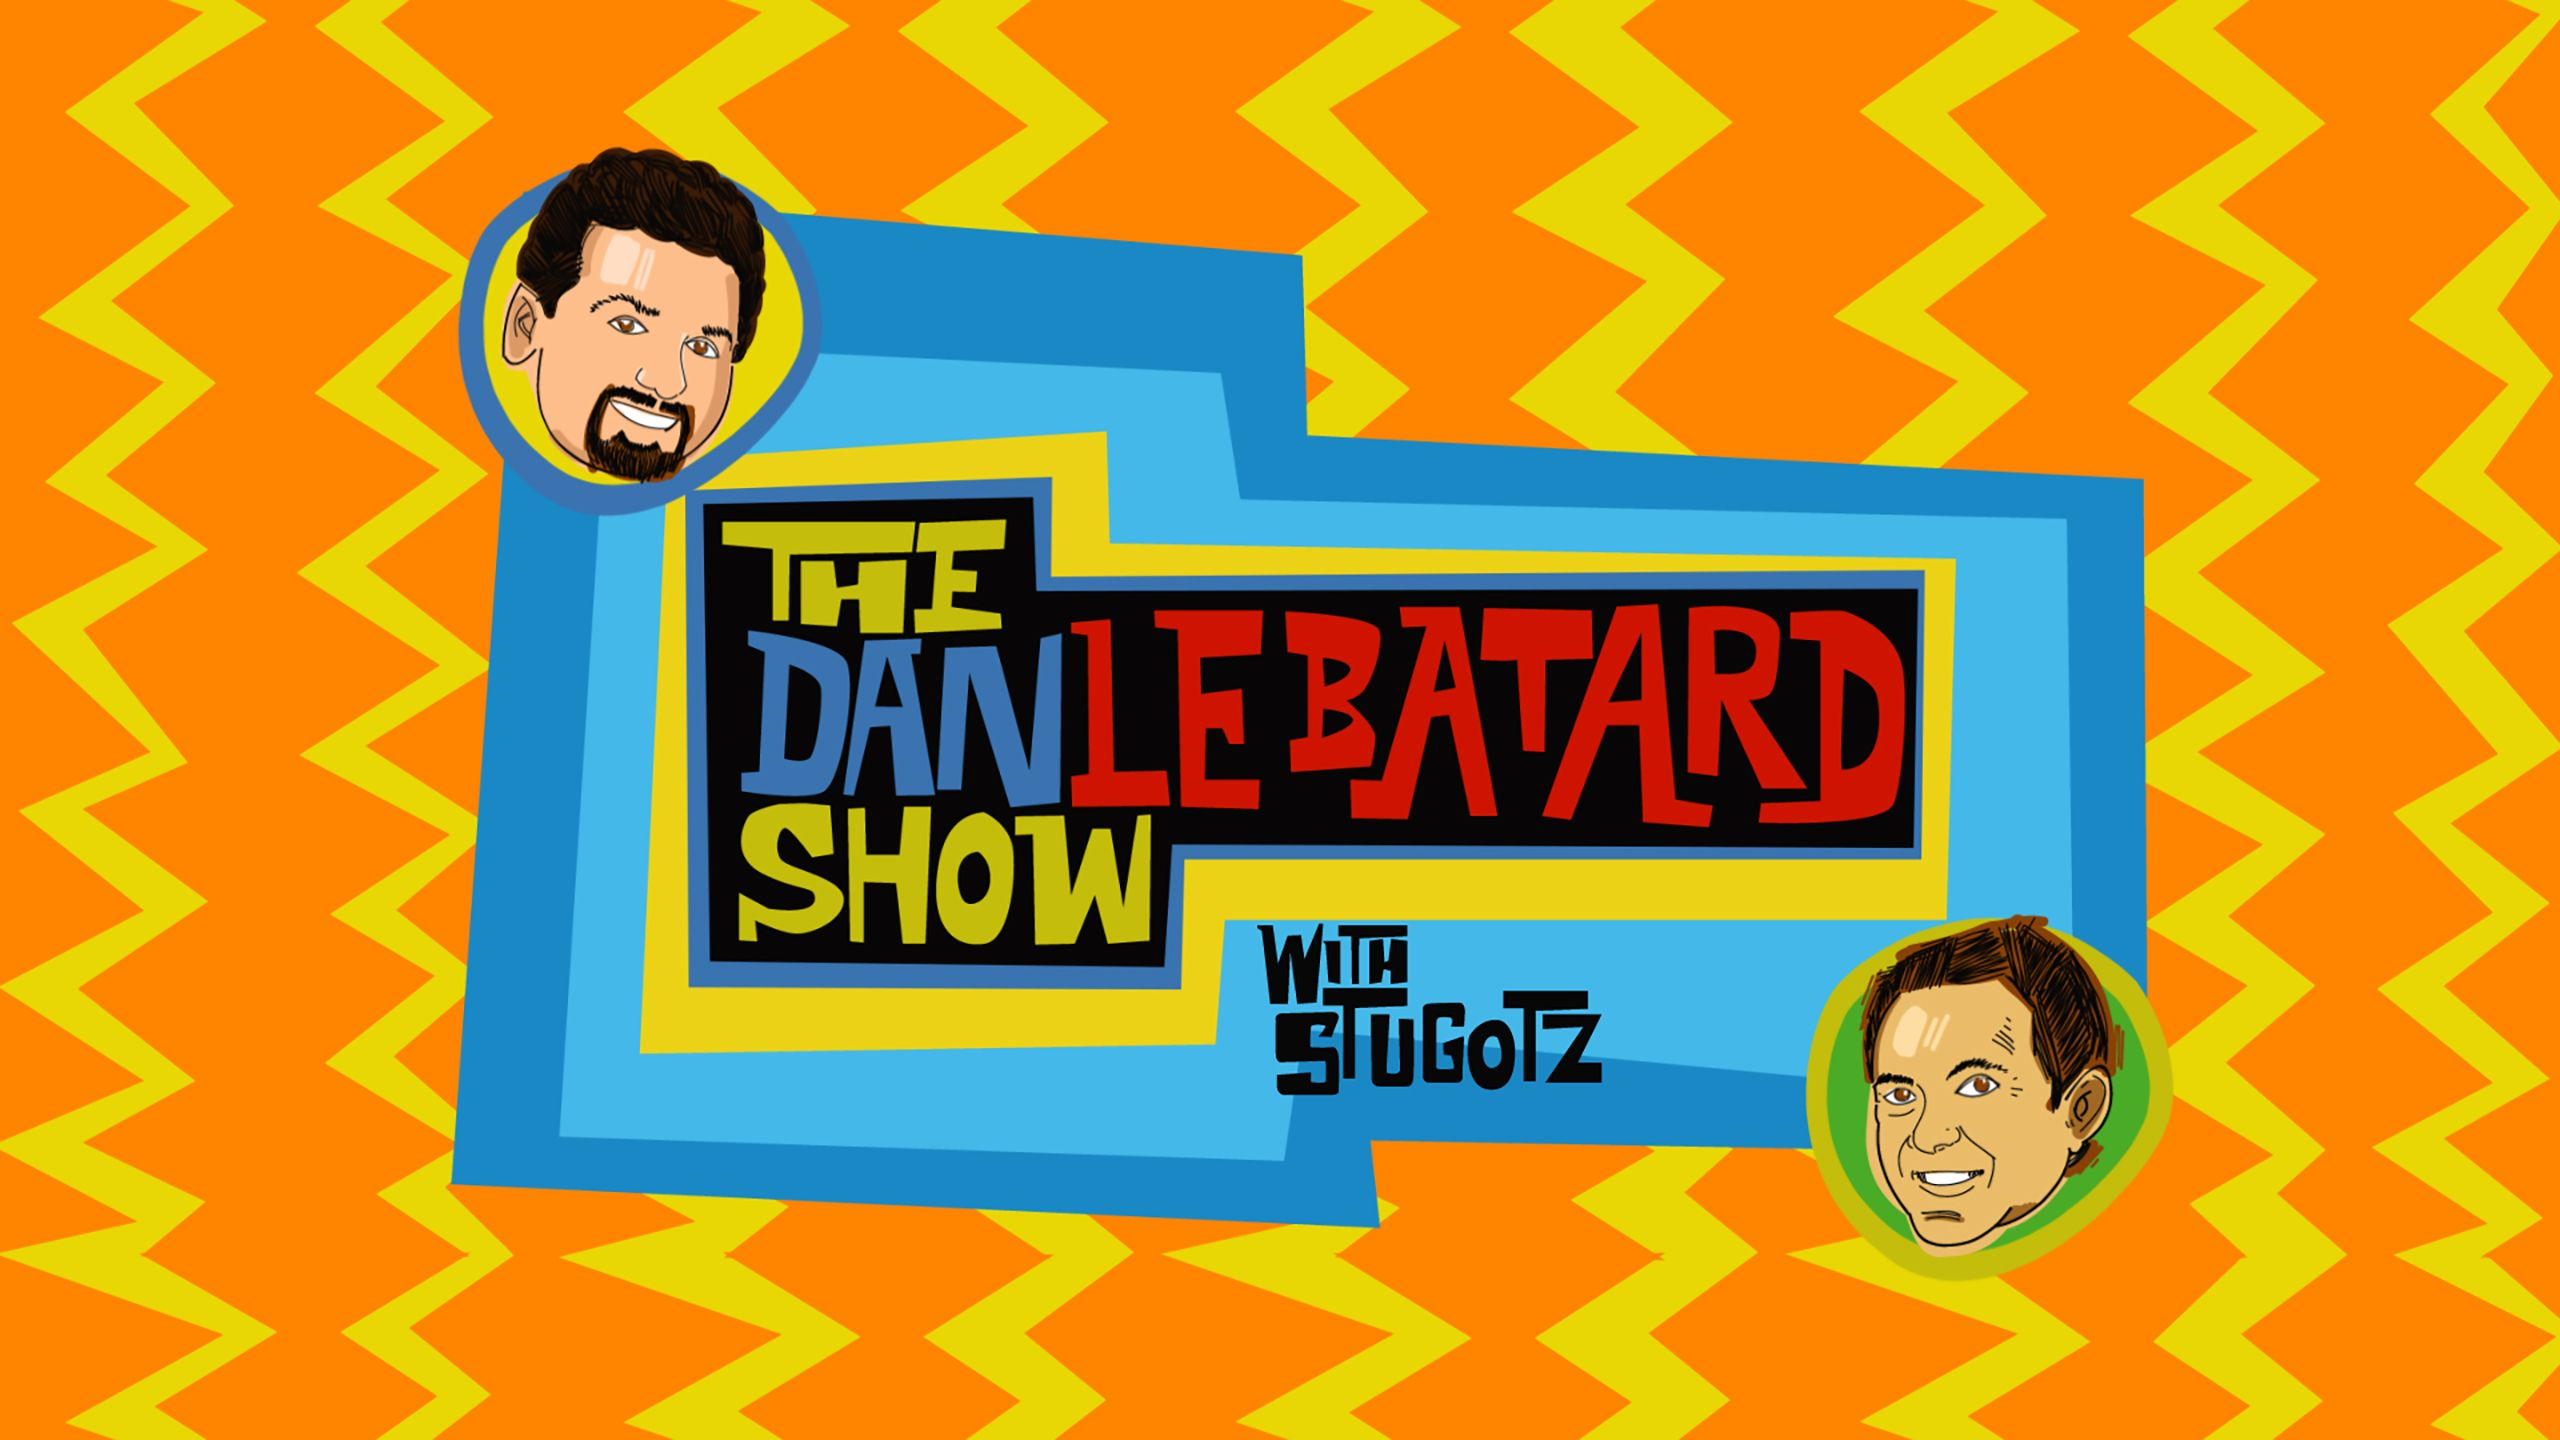 Mon, 10/16 - The Dan Le Batard Show with Stugotz Presented by Progressive